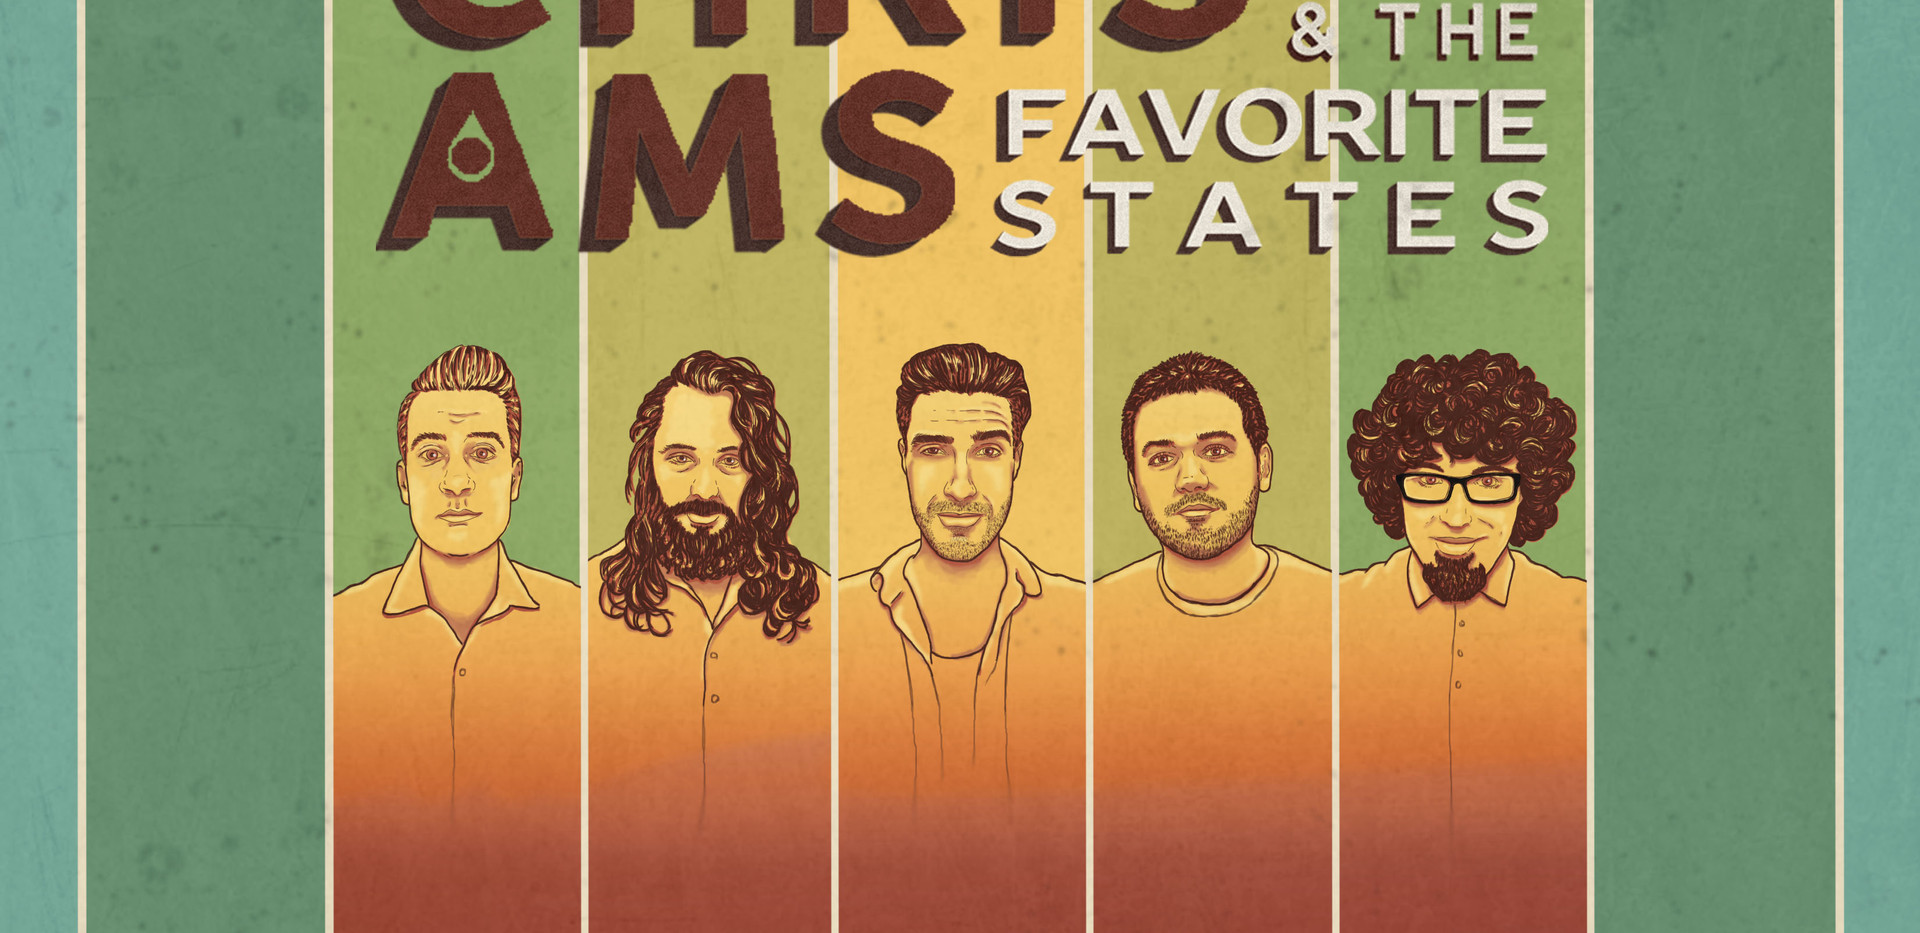 Chris Ams and the Favorite States